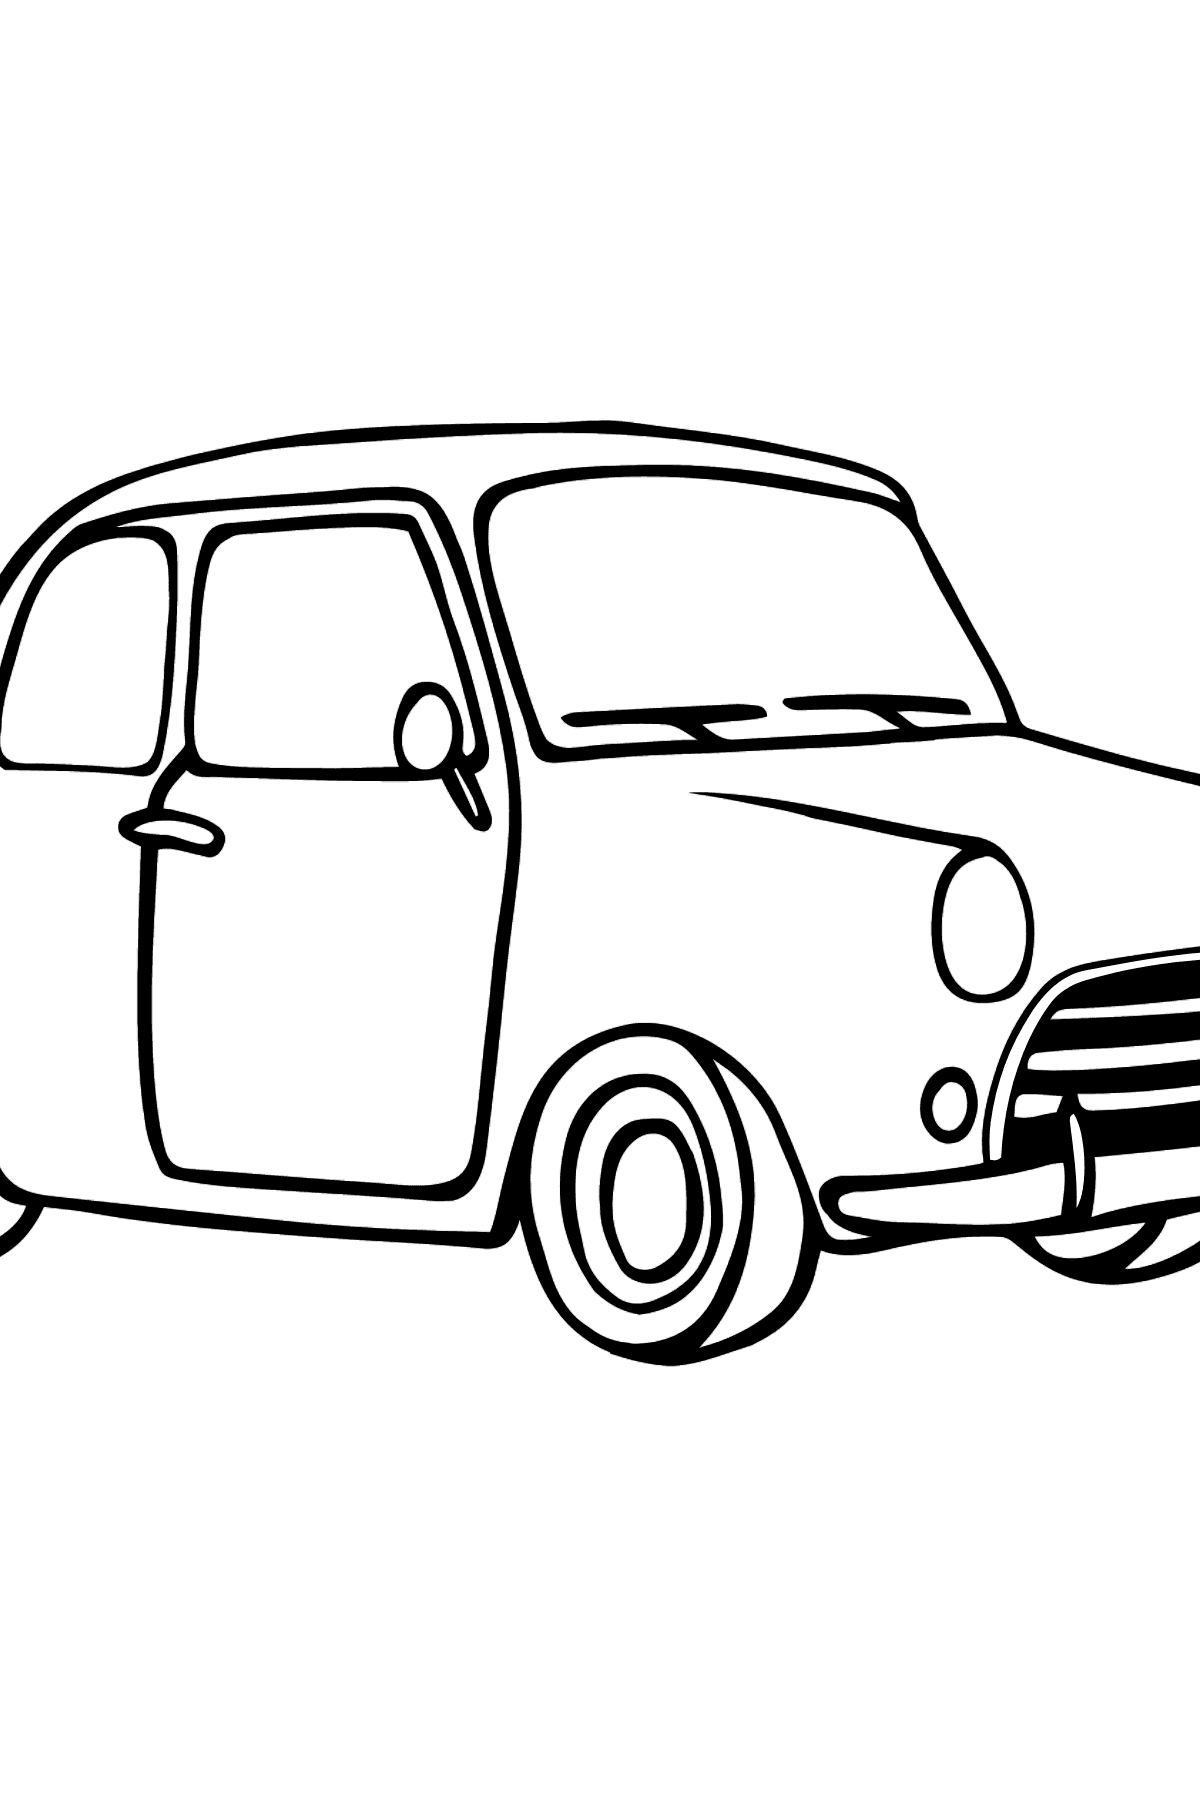 Fiat 500 coloring page (green car) - Coloring Pages for Kids